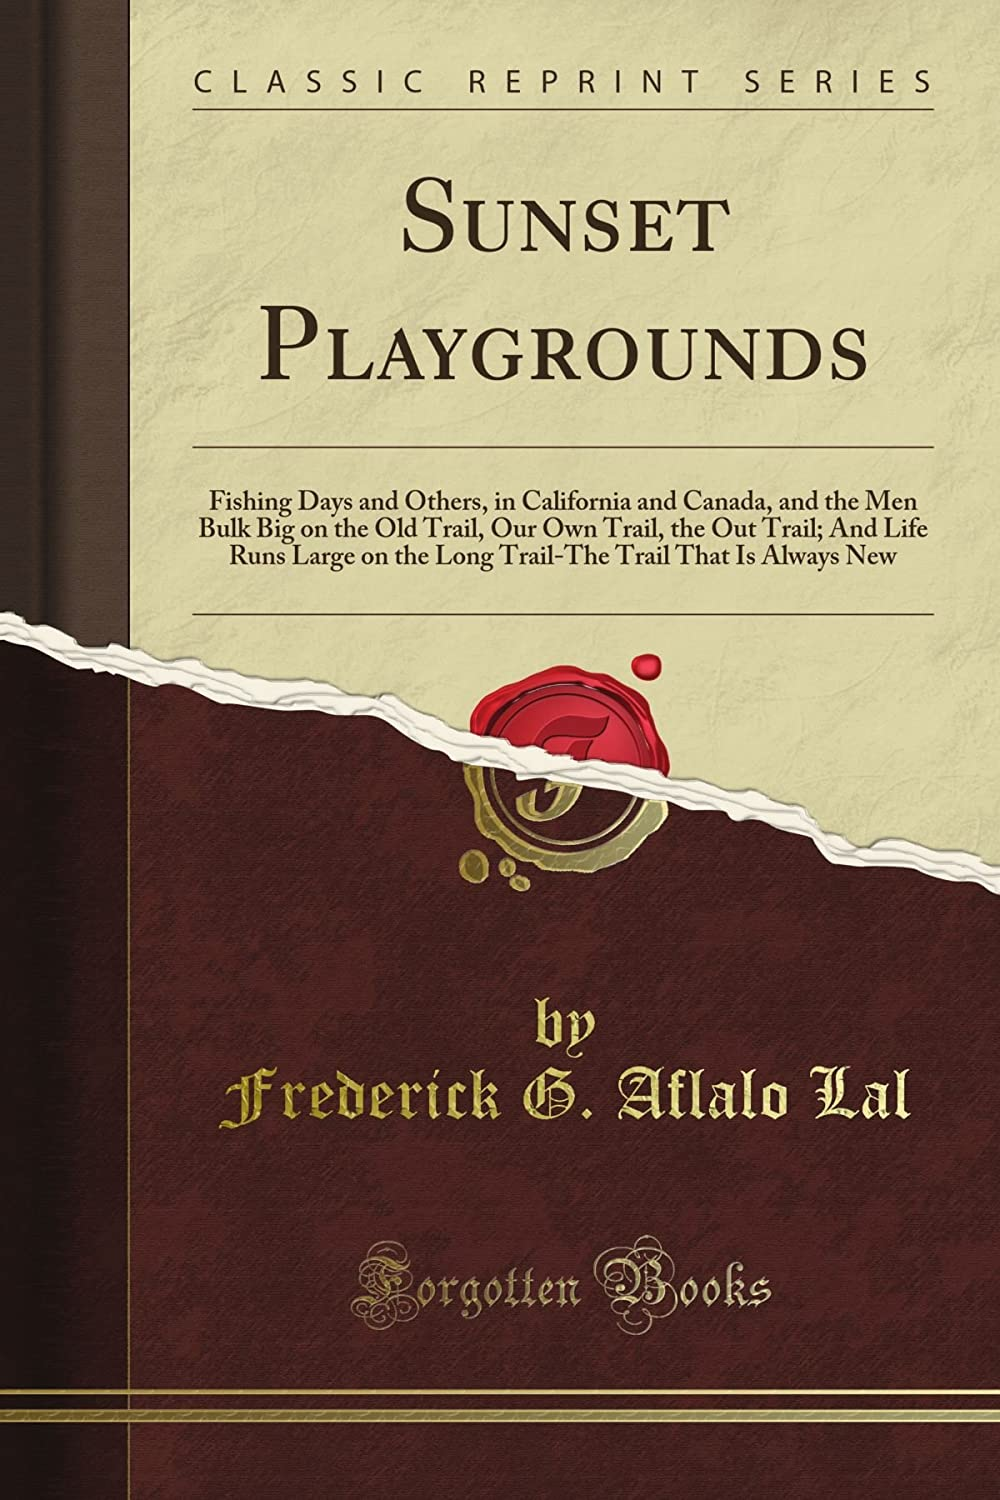 Sunset Playgrounds: Fishing Days and Others, in California and Canada, and the Men Bulk Big on the Old Trail, Our Own Trail, the Out Trail; And Life Runs Large on the Long Trail-The Trail That Is Always New (Classic Reprint)